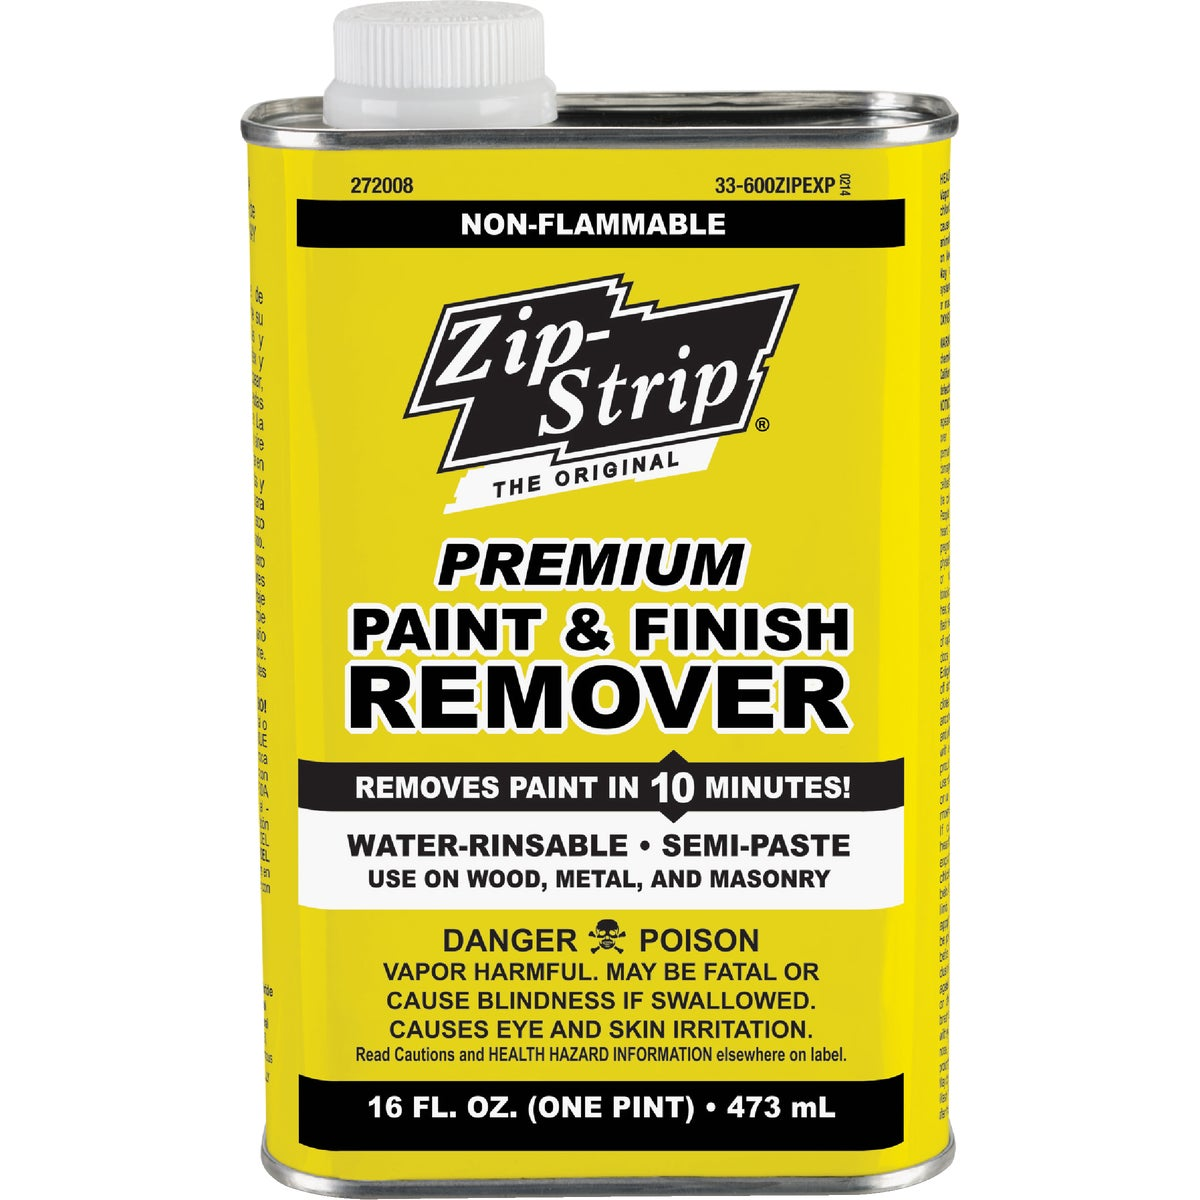 ZIP STRIP PAINT REMOVER - 272008 by Absolute Coatings